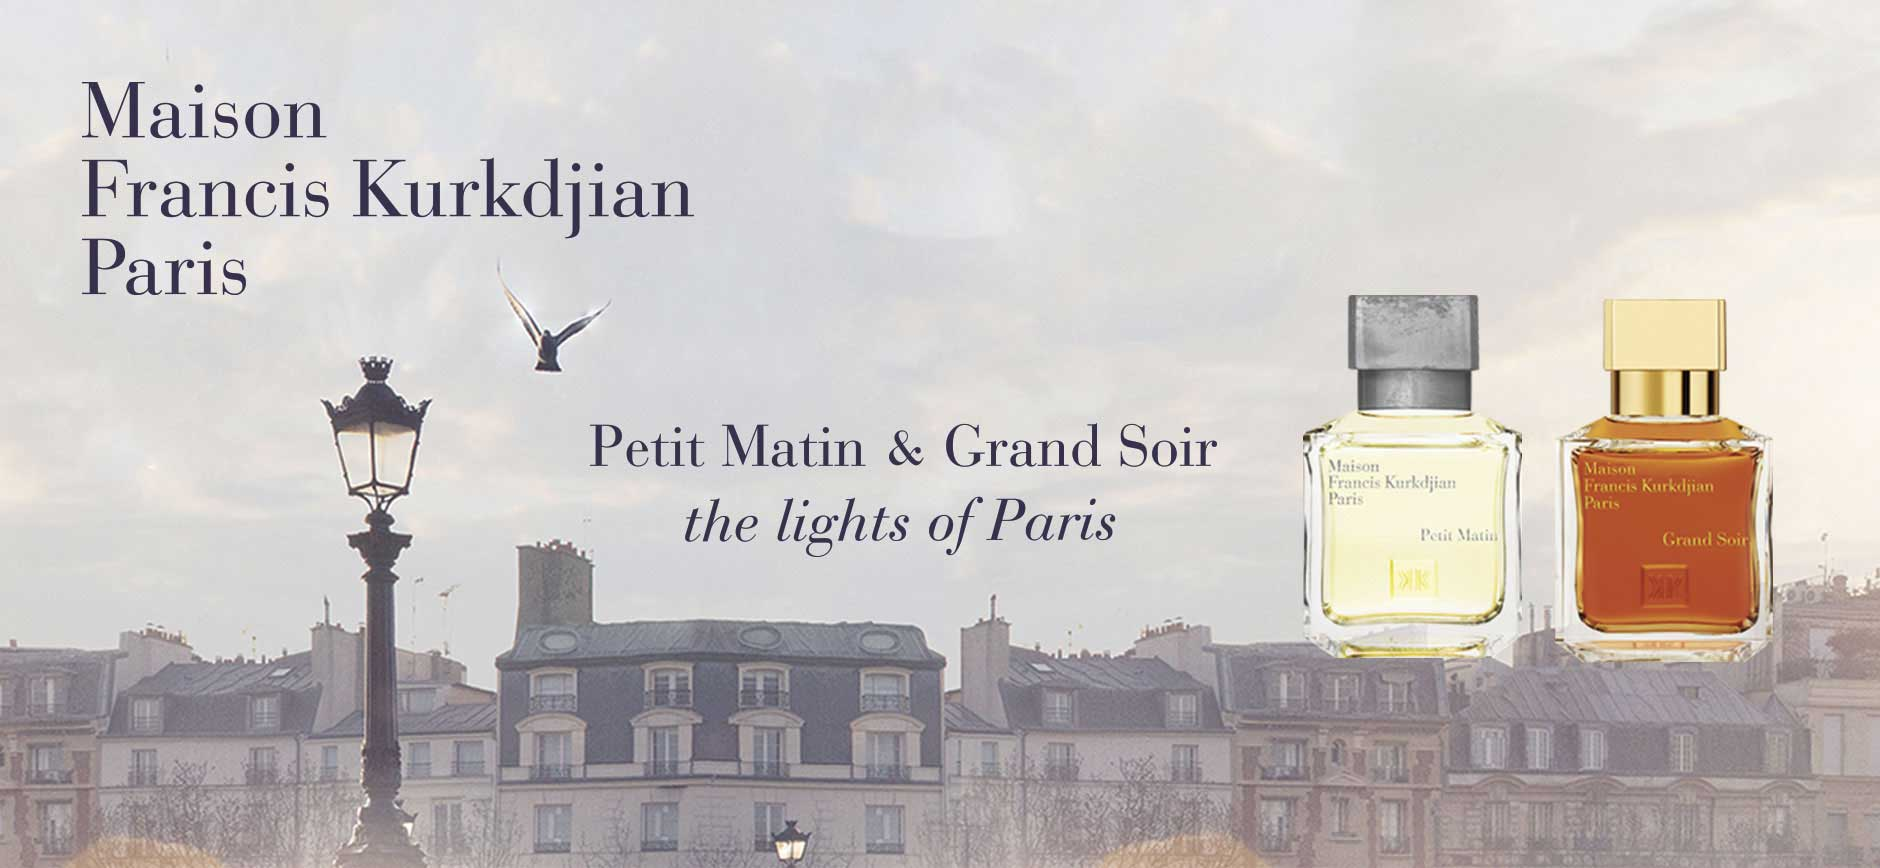 Maison Francis Kurkdjian Paris: Petit Matin & Grand Soir - the lights of Paris